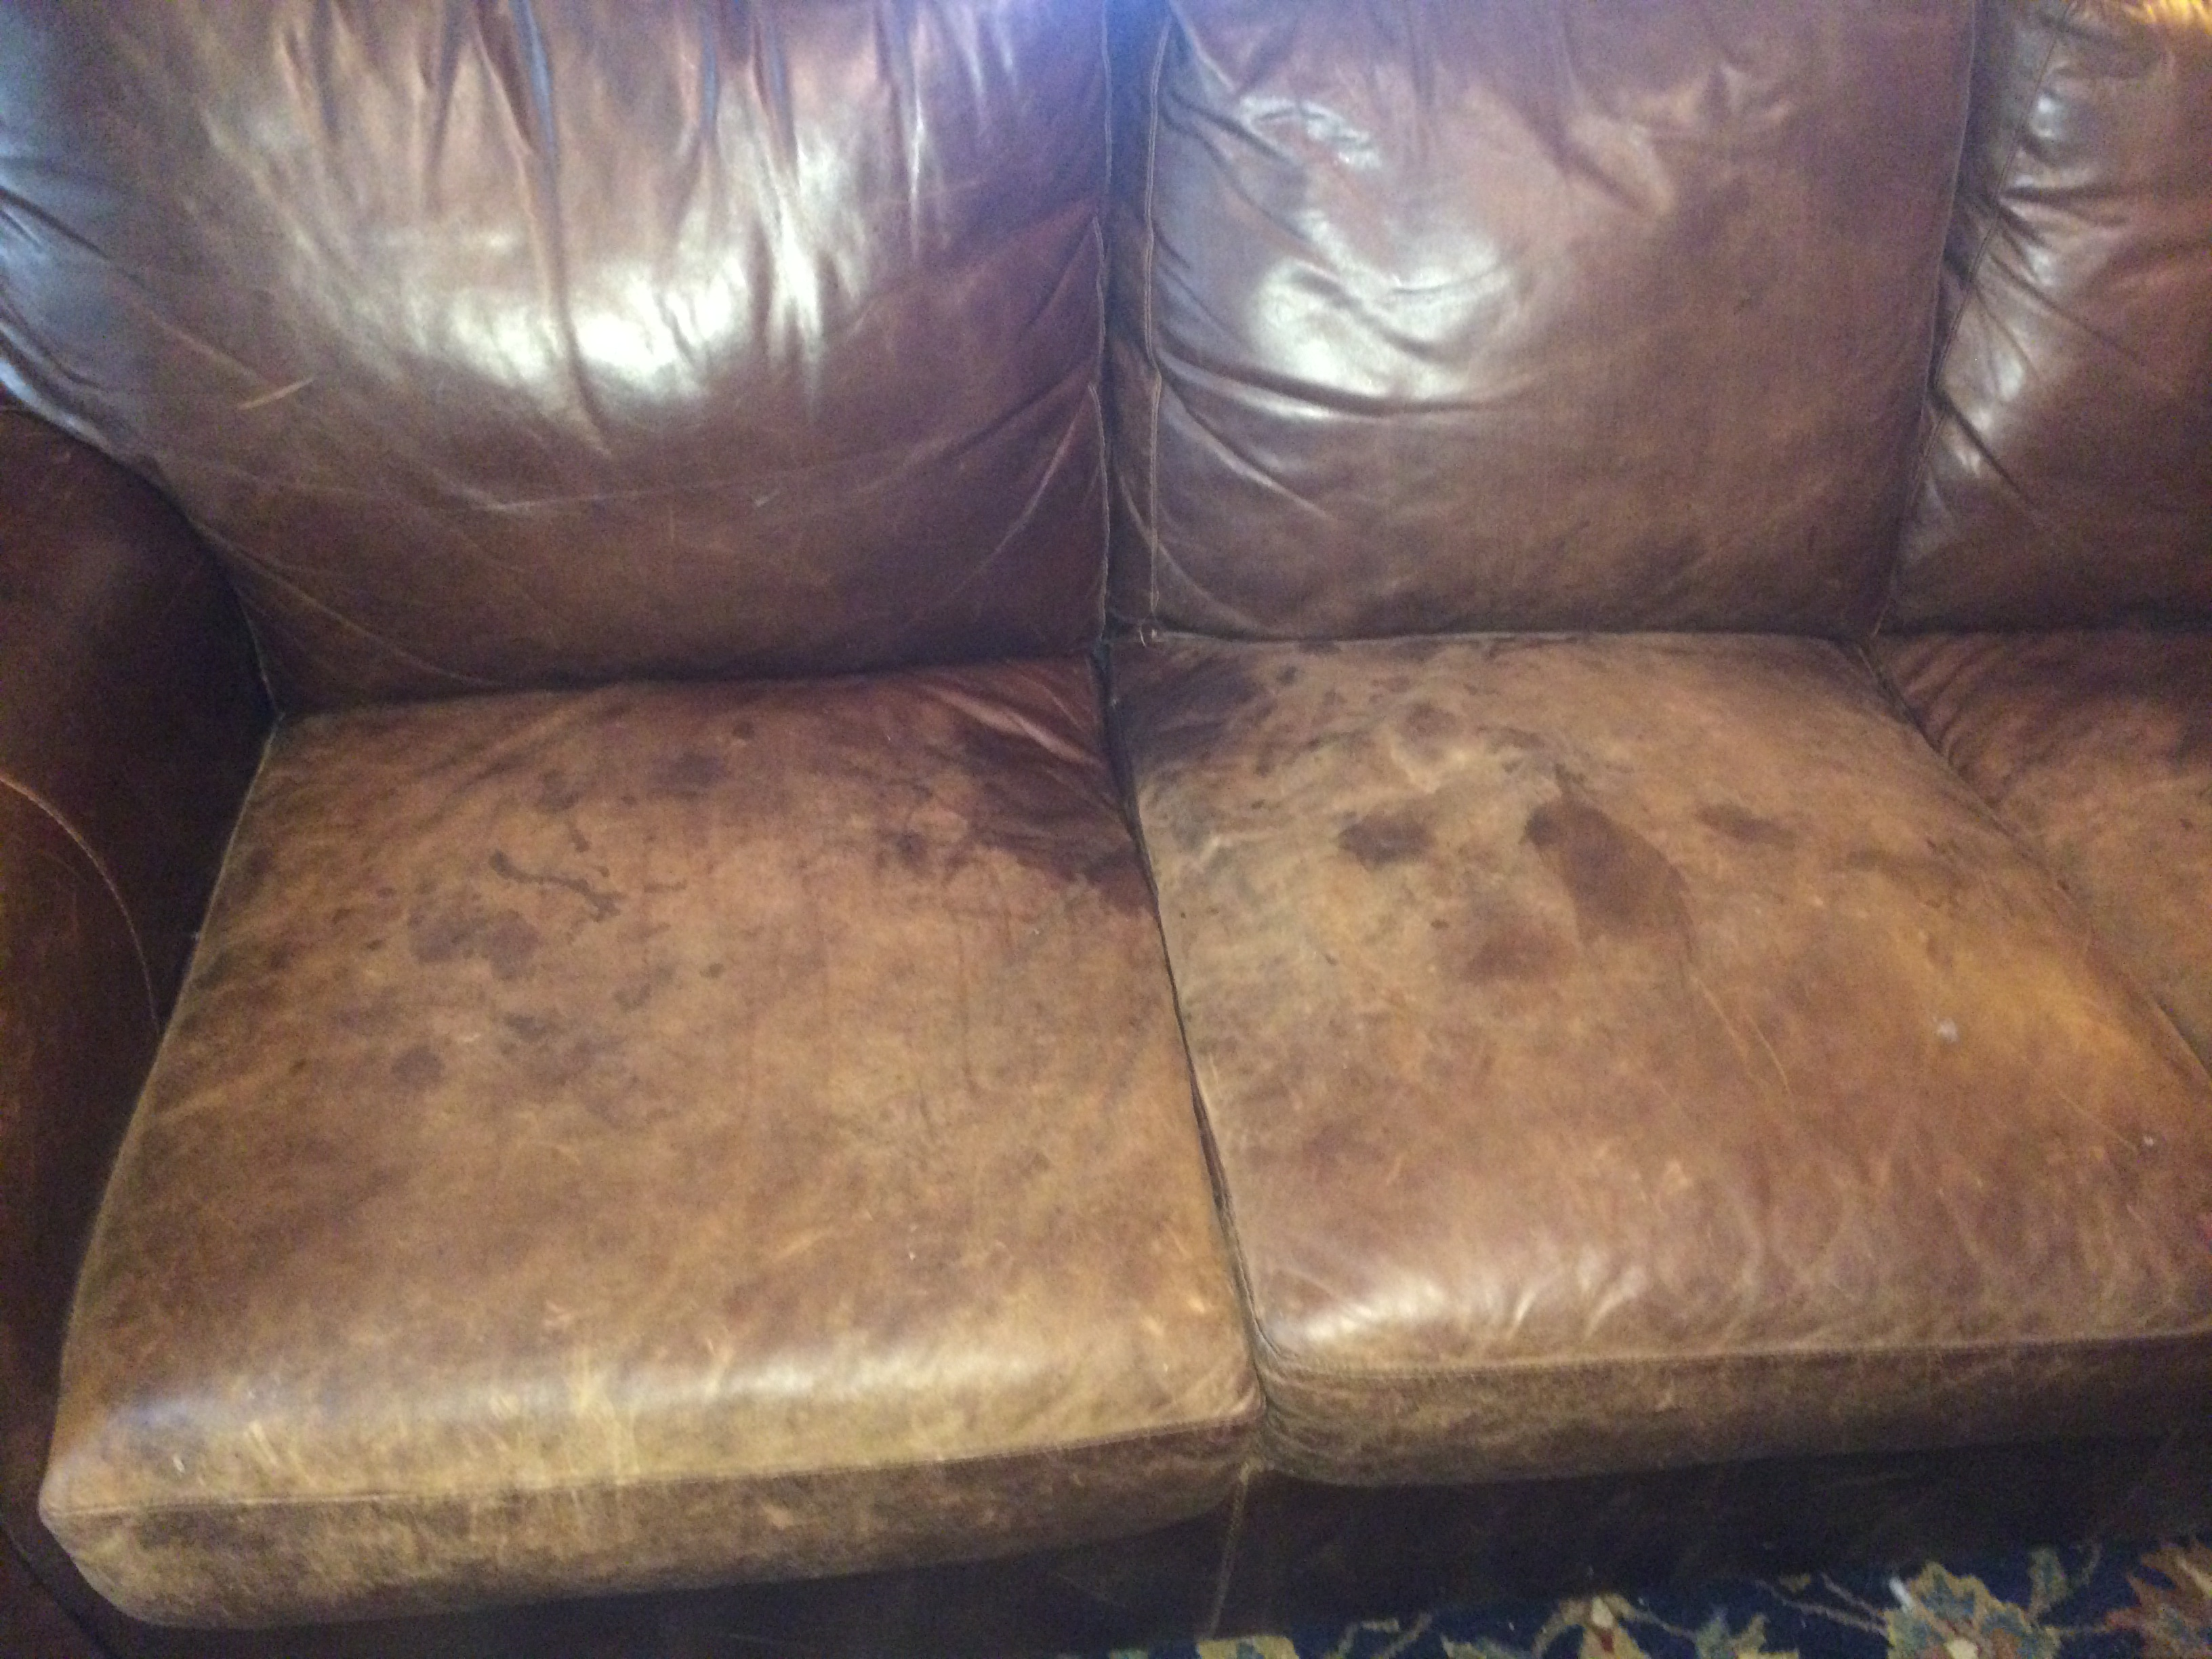 Aniline Sauvage Aniline Wax Leather Stains And Wear Repair